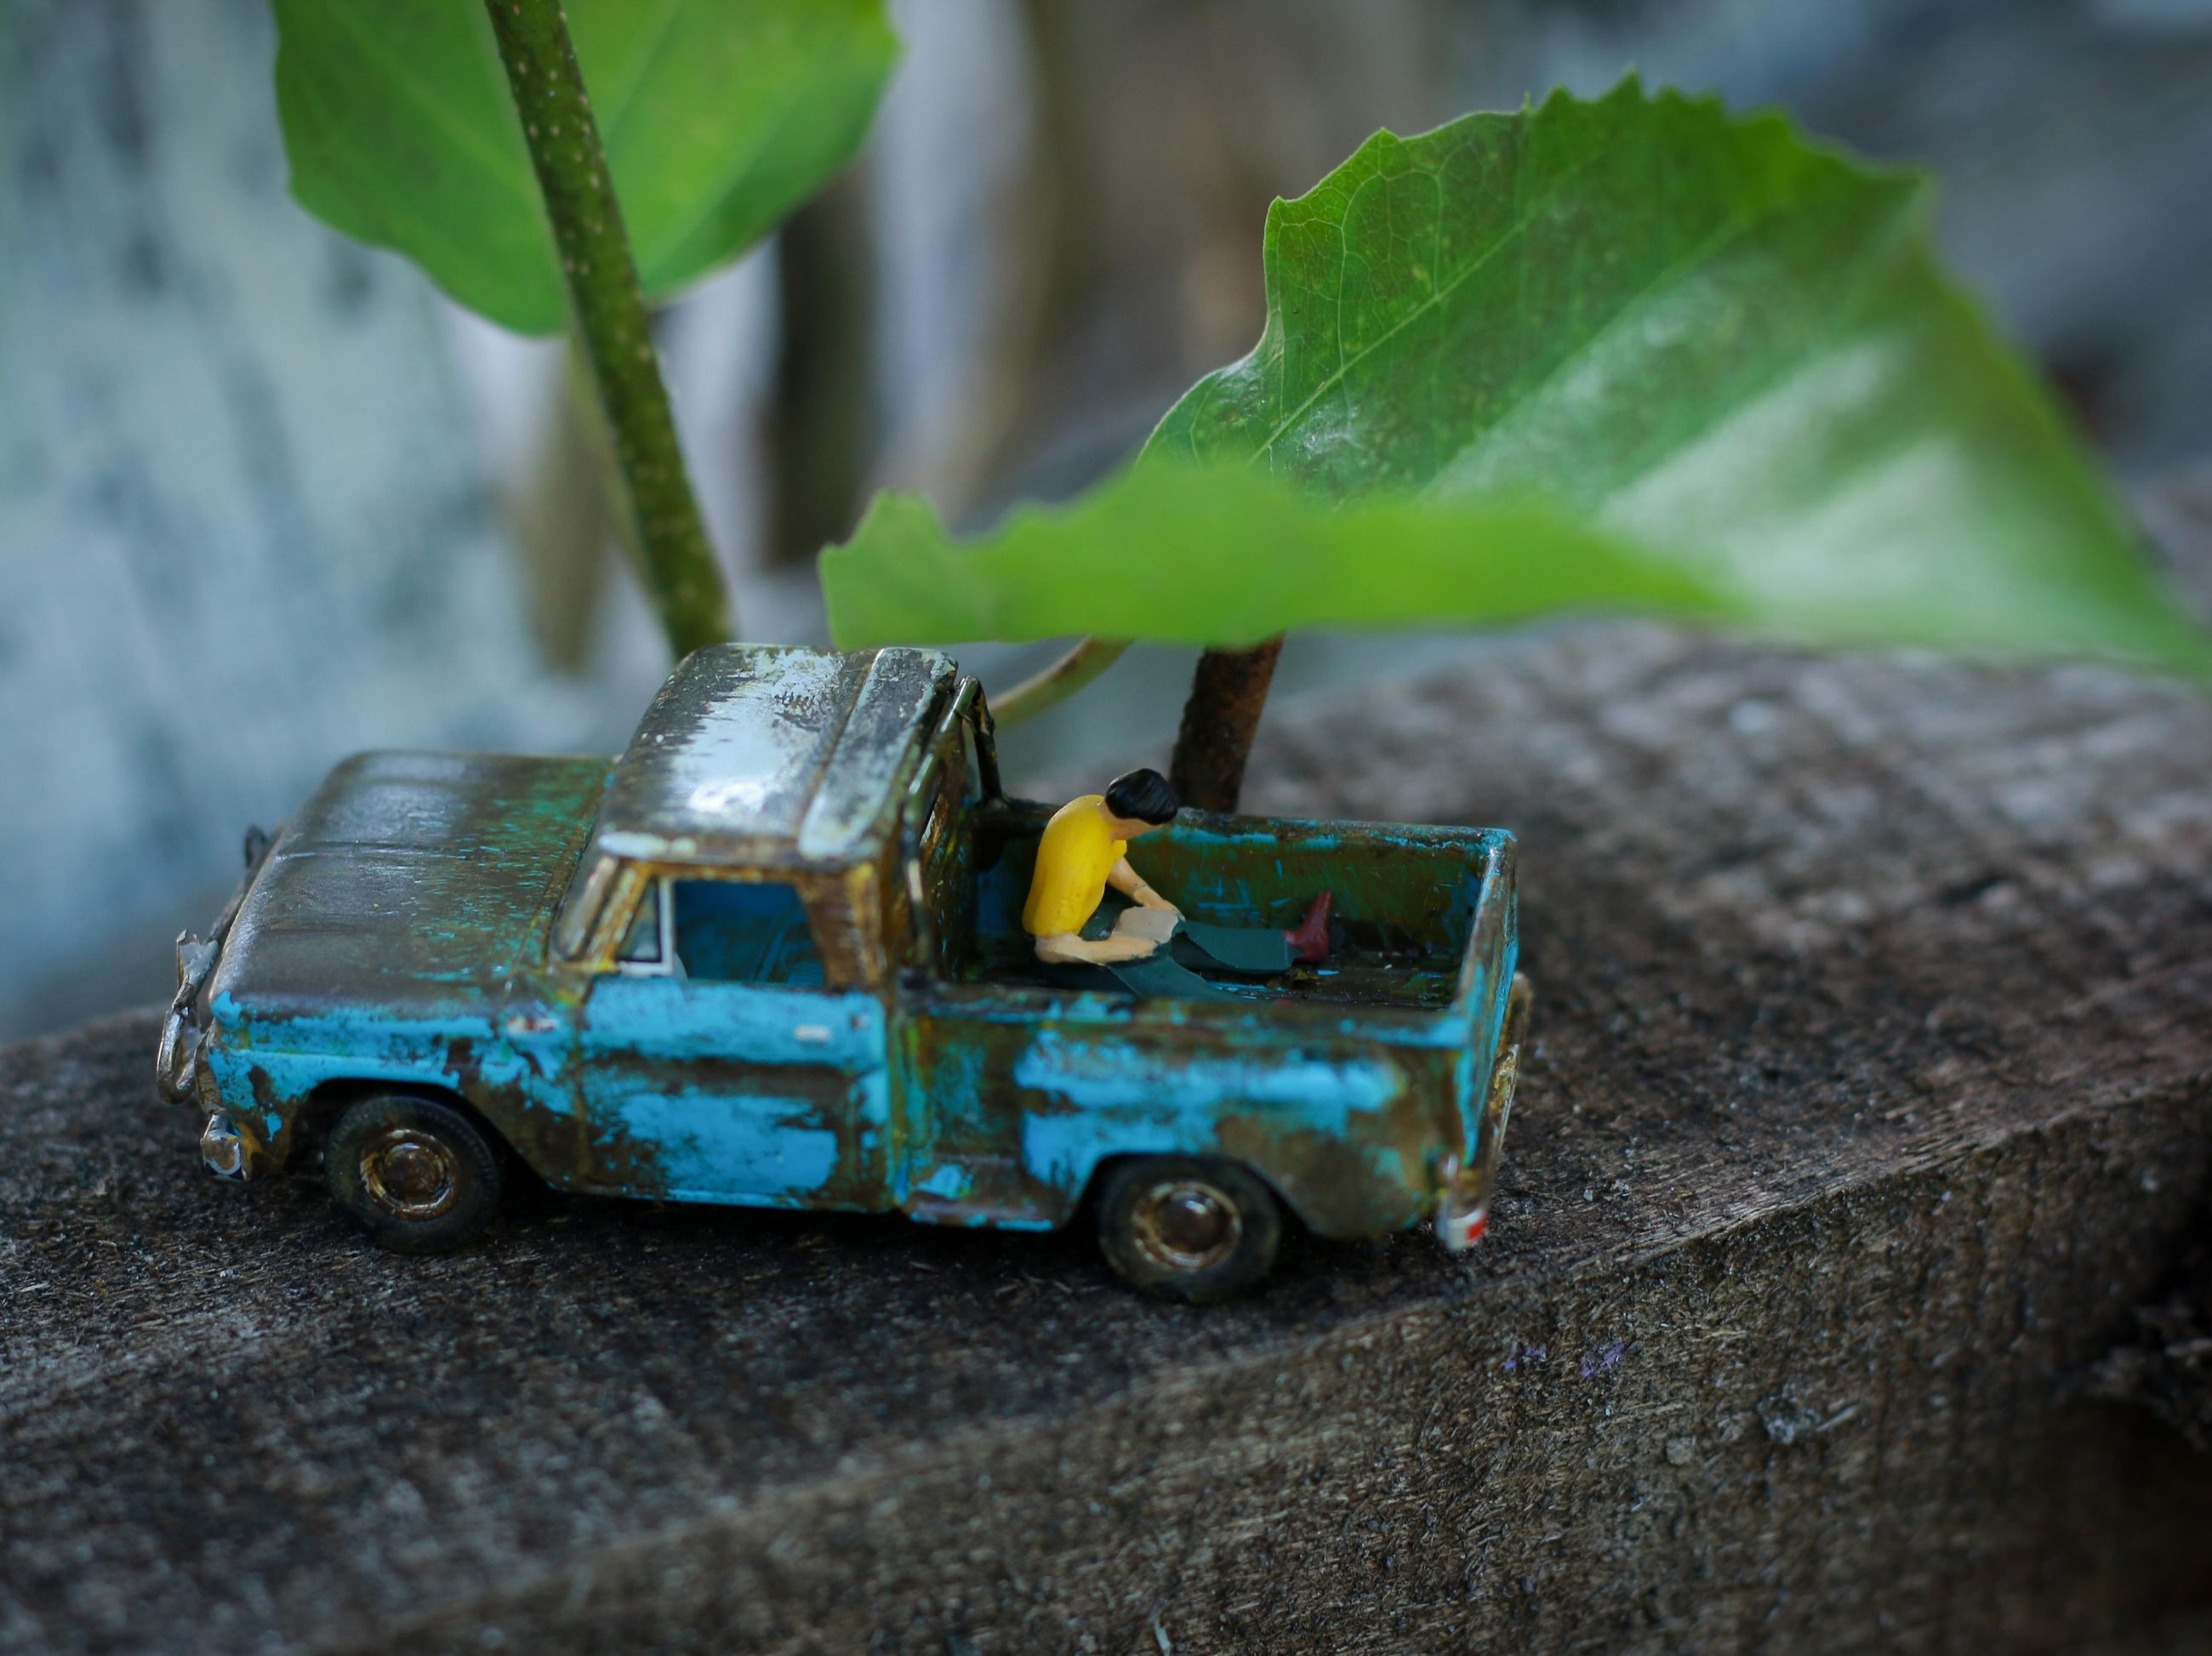 toy, green color, toy car, leaf, selective focus, plant part, day, close-up, car, childhood, nature, wood - material, still life, outdoors, motor vehicle, mode of transportation, transportation, high angle view, creativity, small